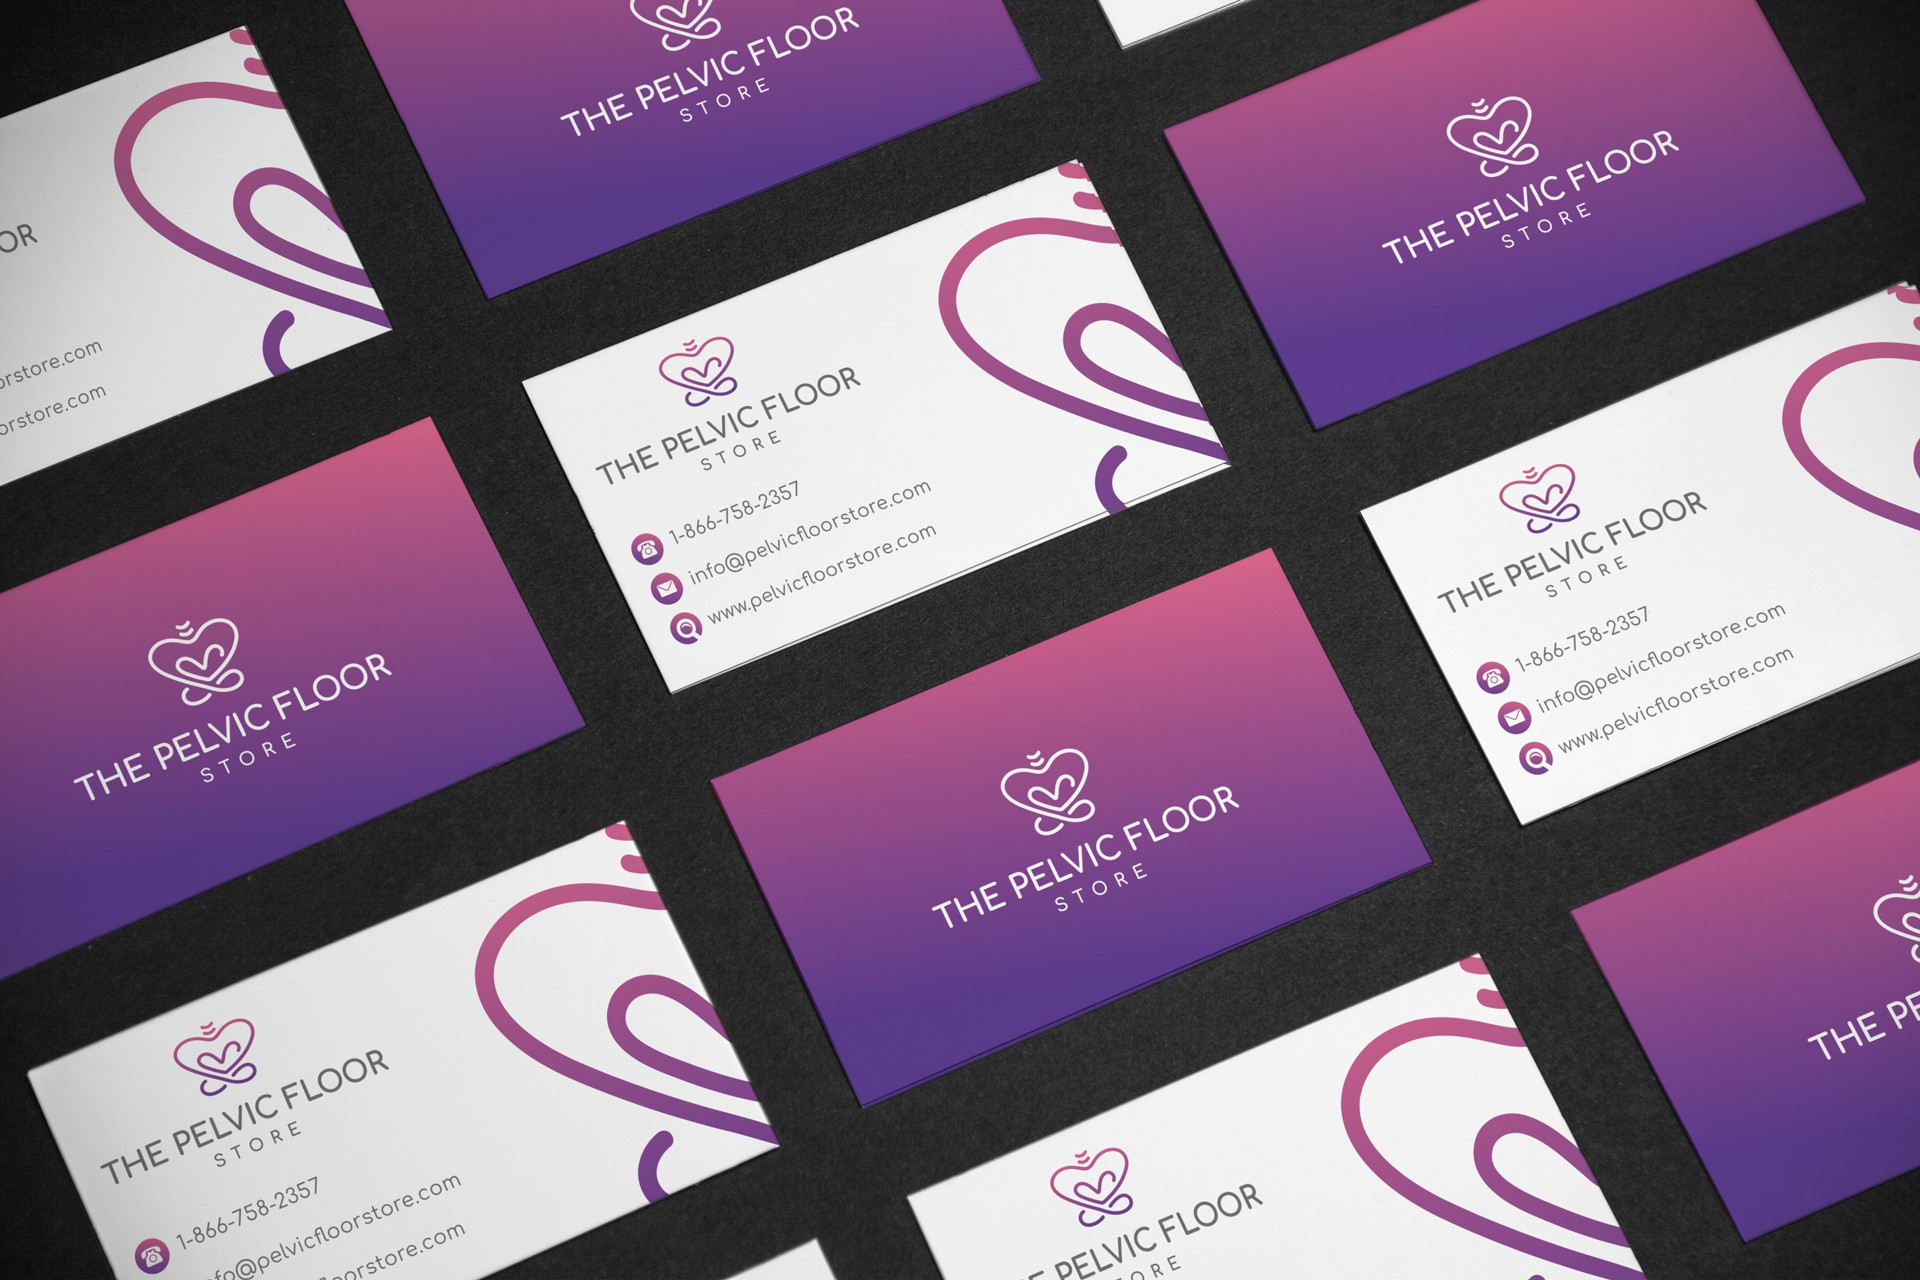 The Pelvic Floor Store Business Cards